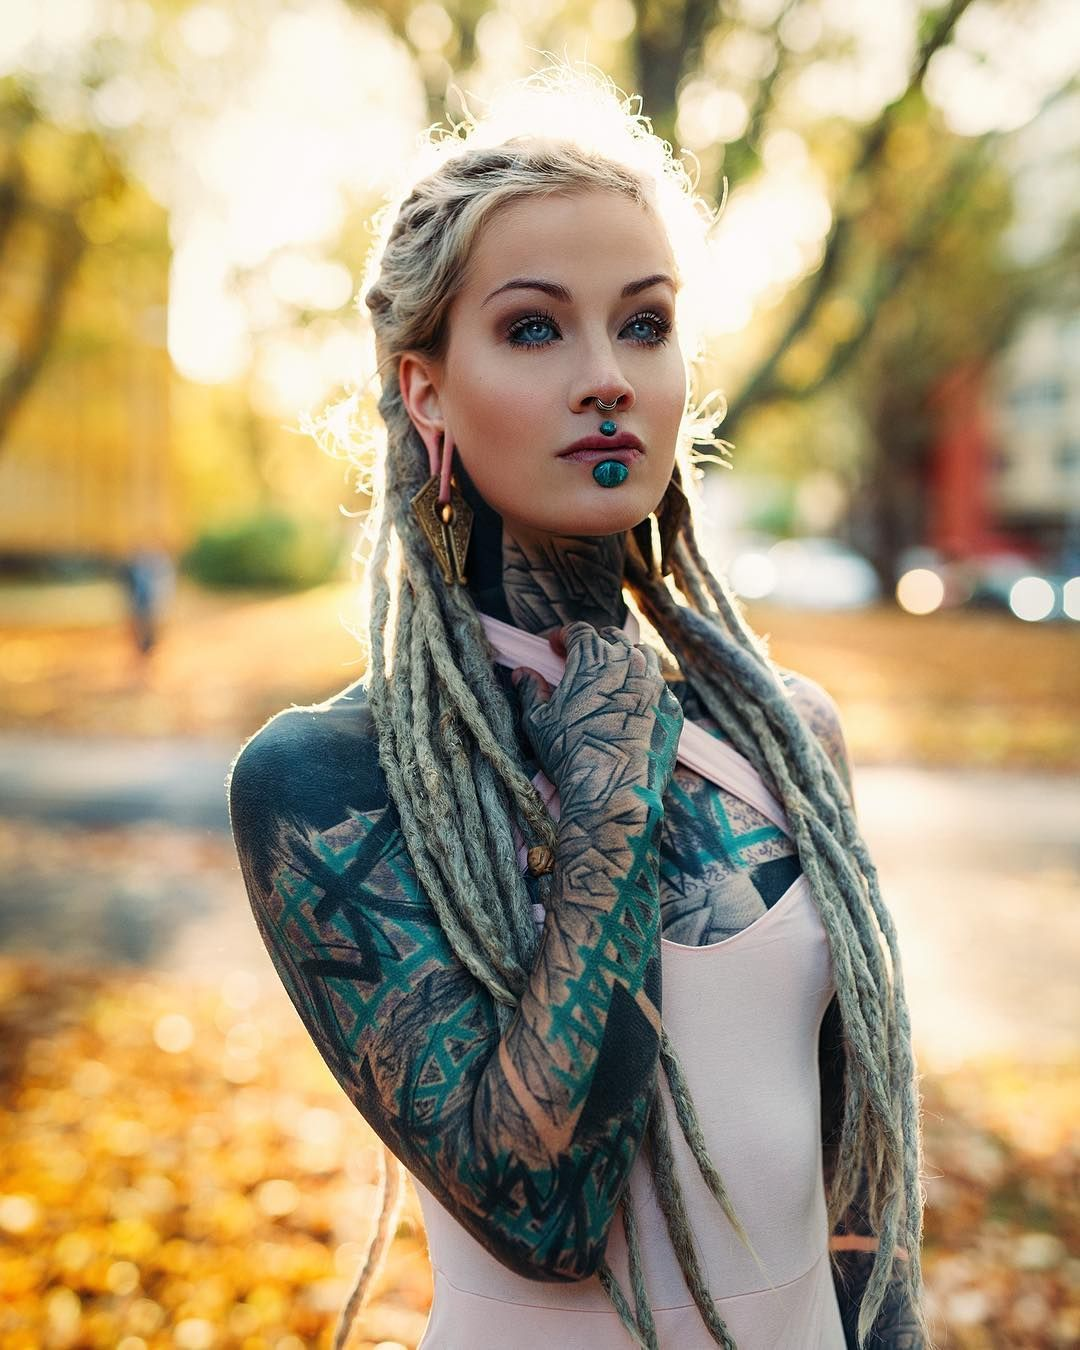 Inked girls nudes (71 images)